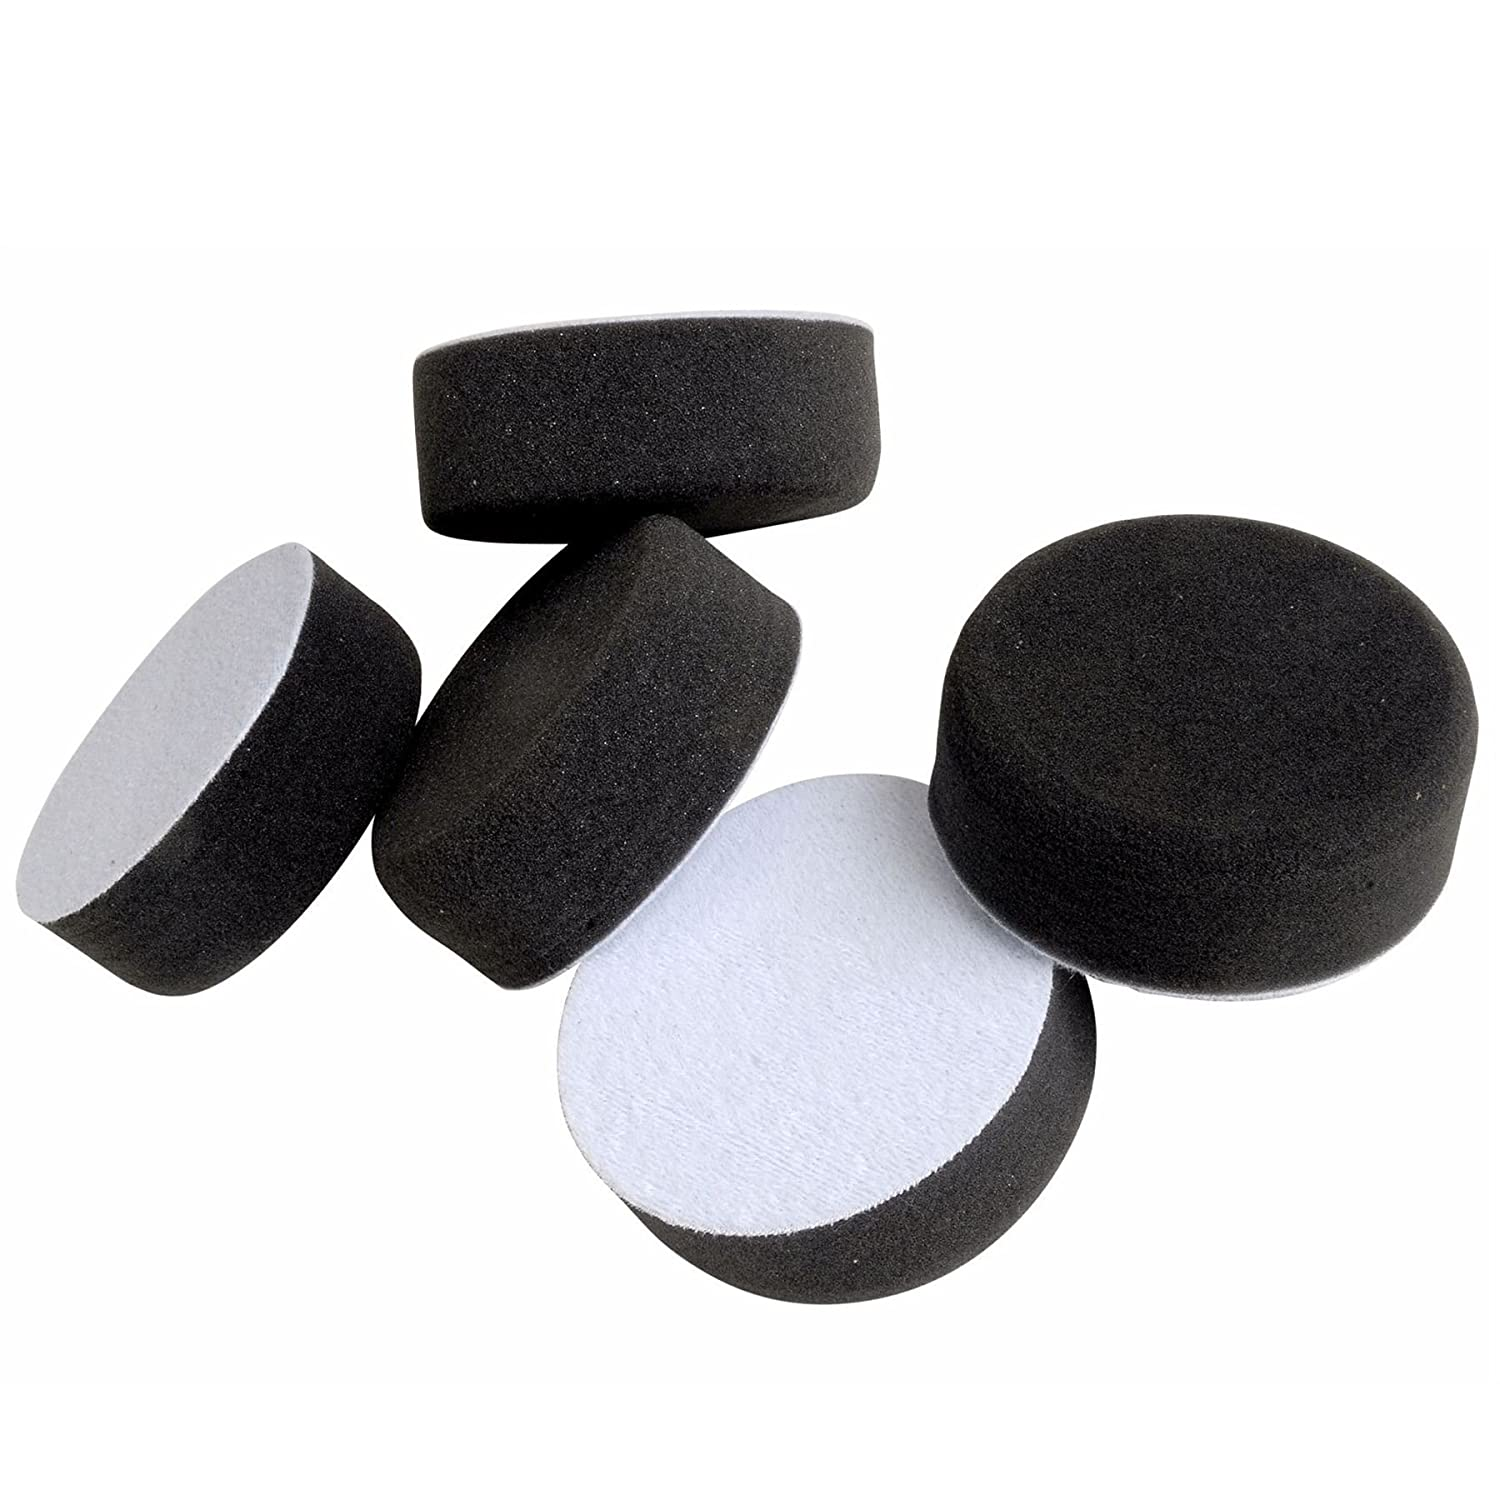 Fast Mover FMT6067 Soft Polishing Foam Pads Round 75mm Hook'N'Loop HookIt Hook and Loop 30mm Thick Pack of 5 Wax/Buffing Electric/Air Polishing Pads